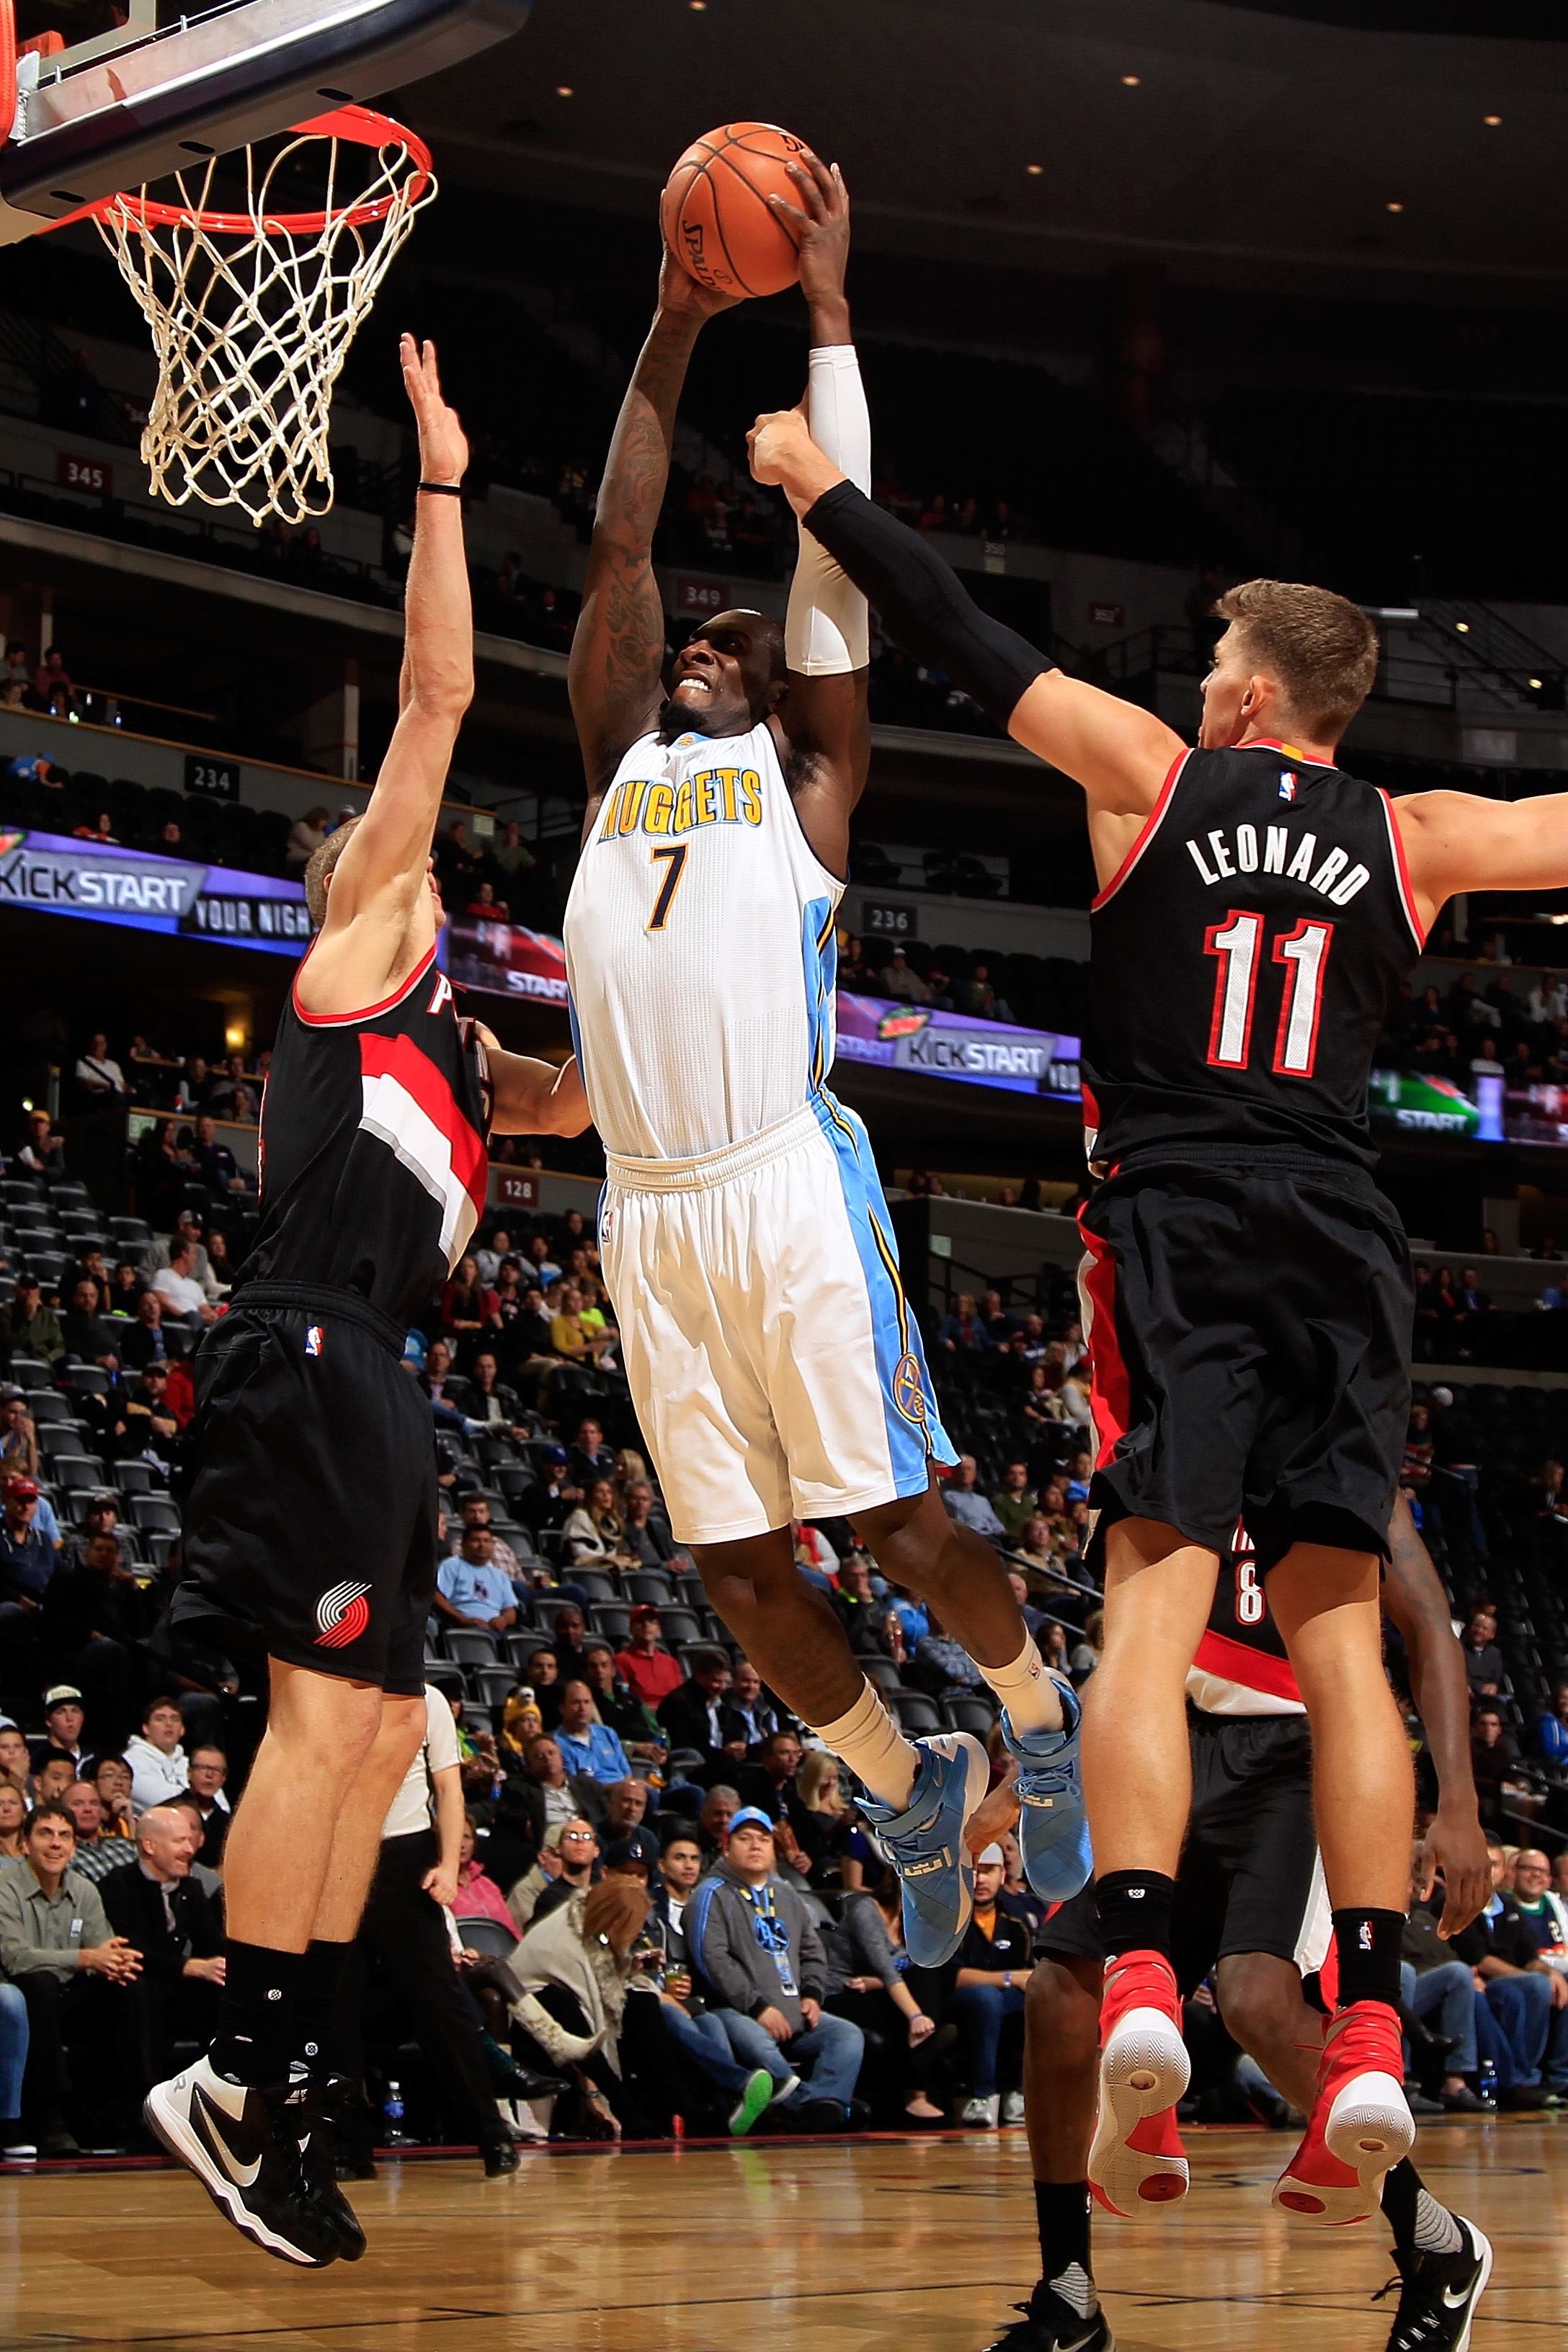 DENVER, CO - NOVEMBER 09:  J.J. Hickson #7 of the Denver Nuggets is fouled by Meyers Leonard #11 of the Portland Trail Blazers as he goes up for a shot at Pepsi Center on November 9, 2015 in Denver, Colorado. The Nuggets defeated the Blazers 108-104. (Pho